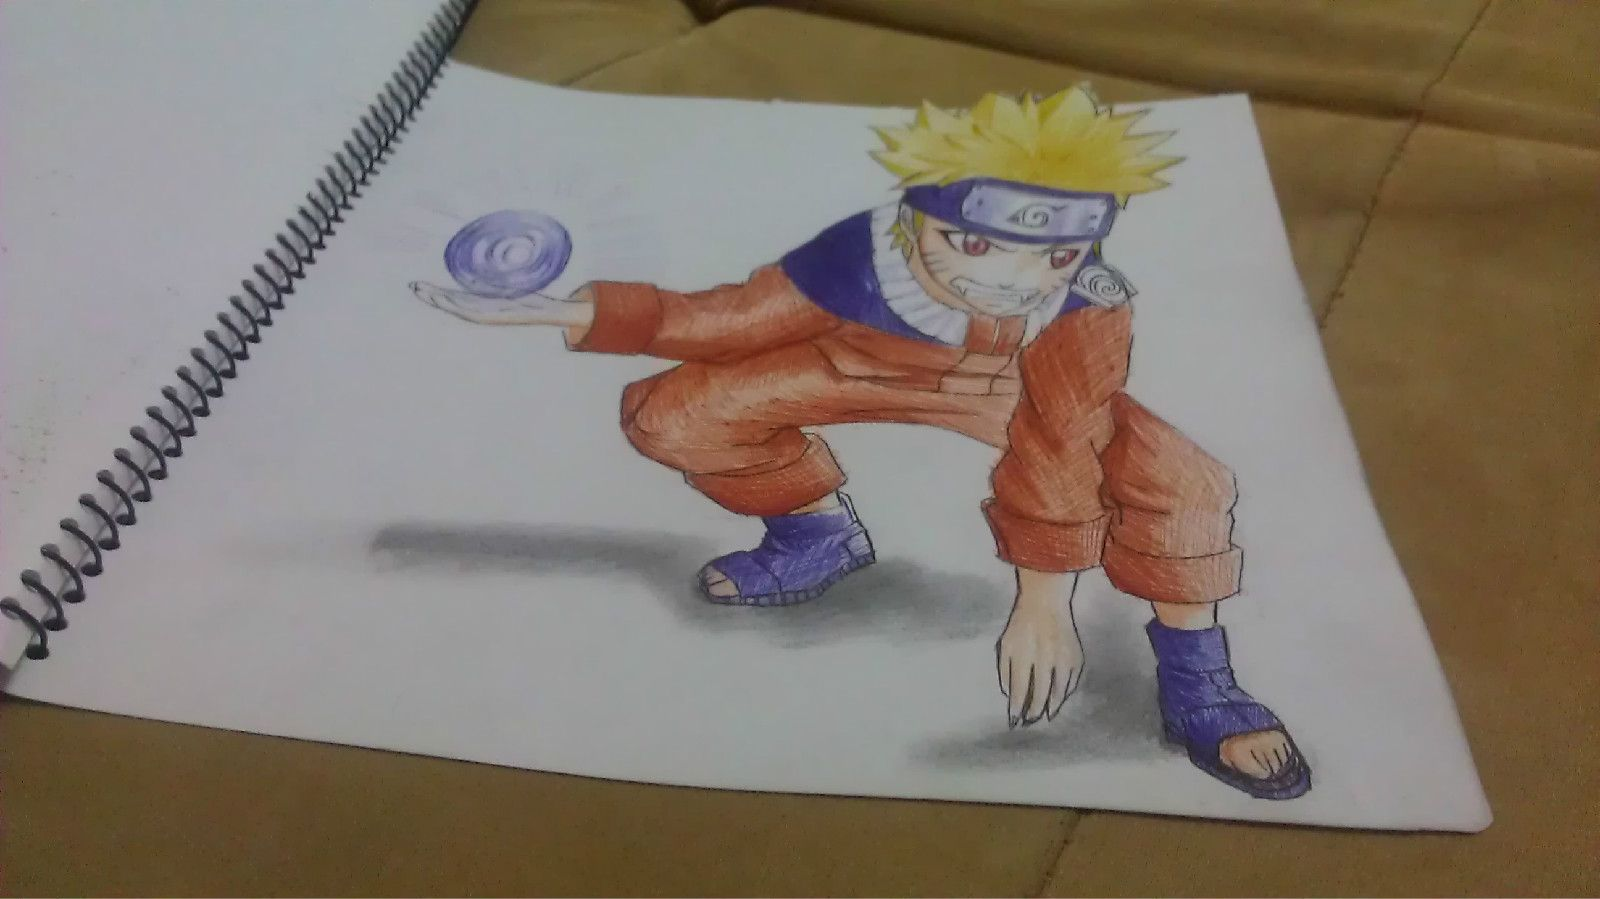 Naruto 3d painting 3d drawings naruto graffiti graphite graffiti artwork